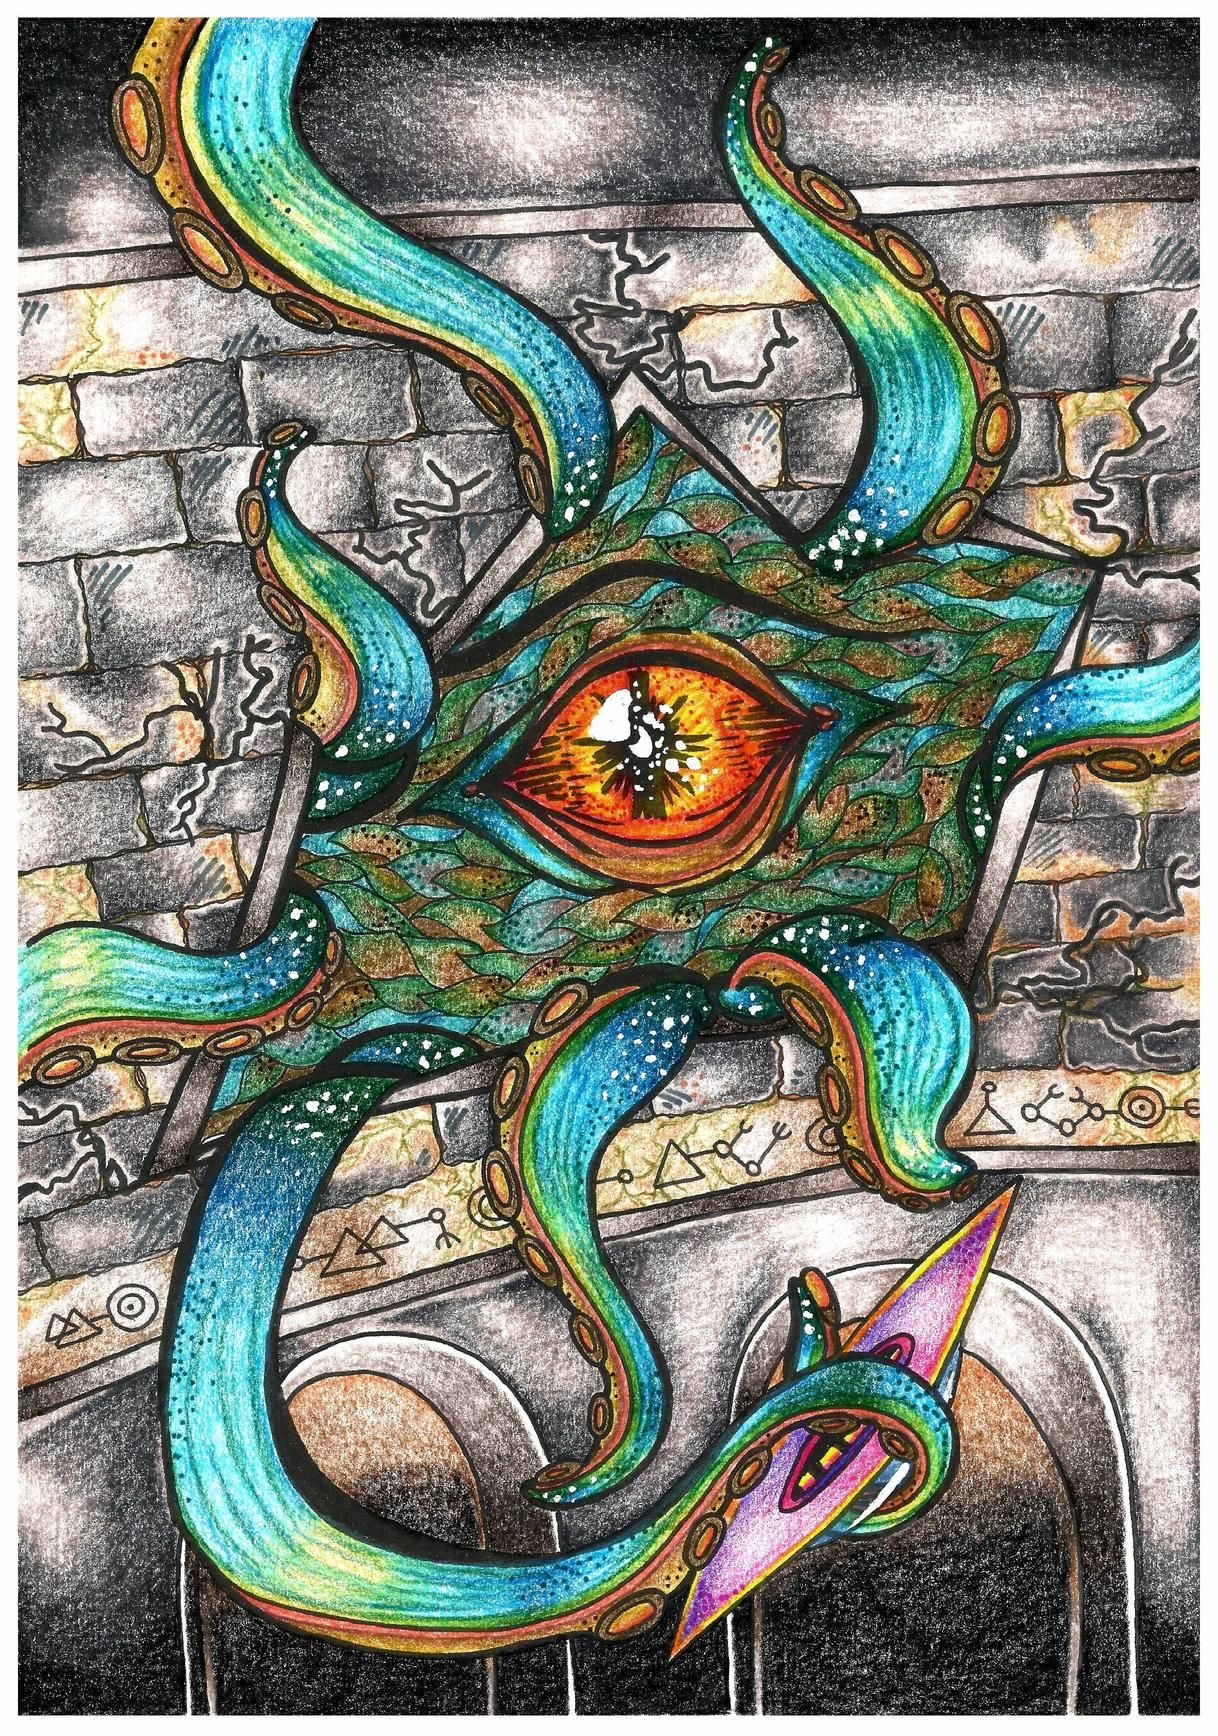 Pin By Crab Tronik On Geek In 2018 Pinterest Coloring Books